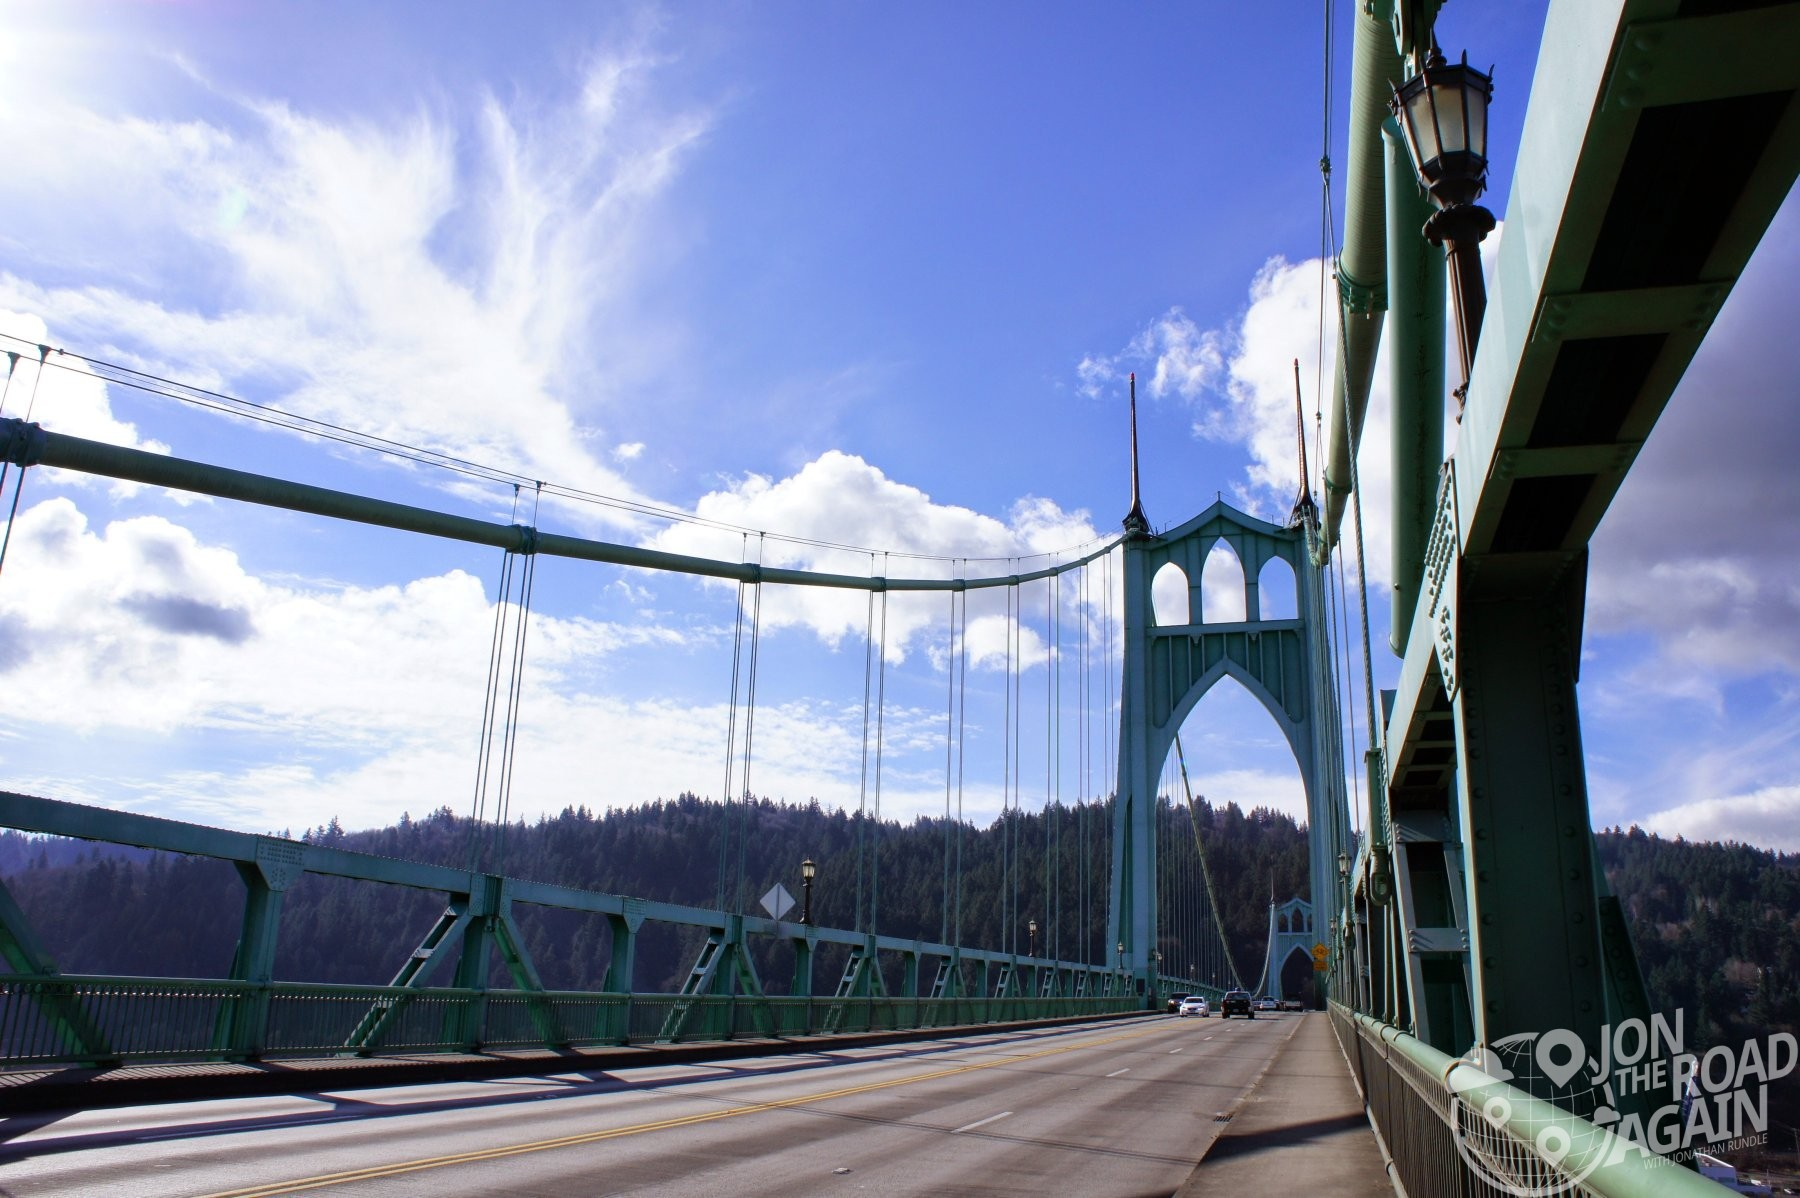 St. John's Bridge in Portland